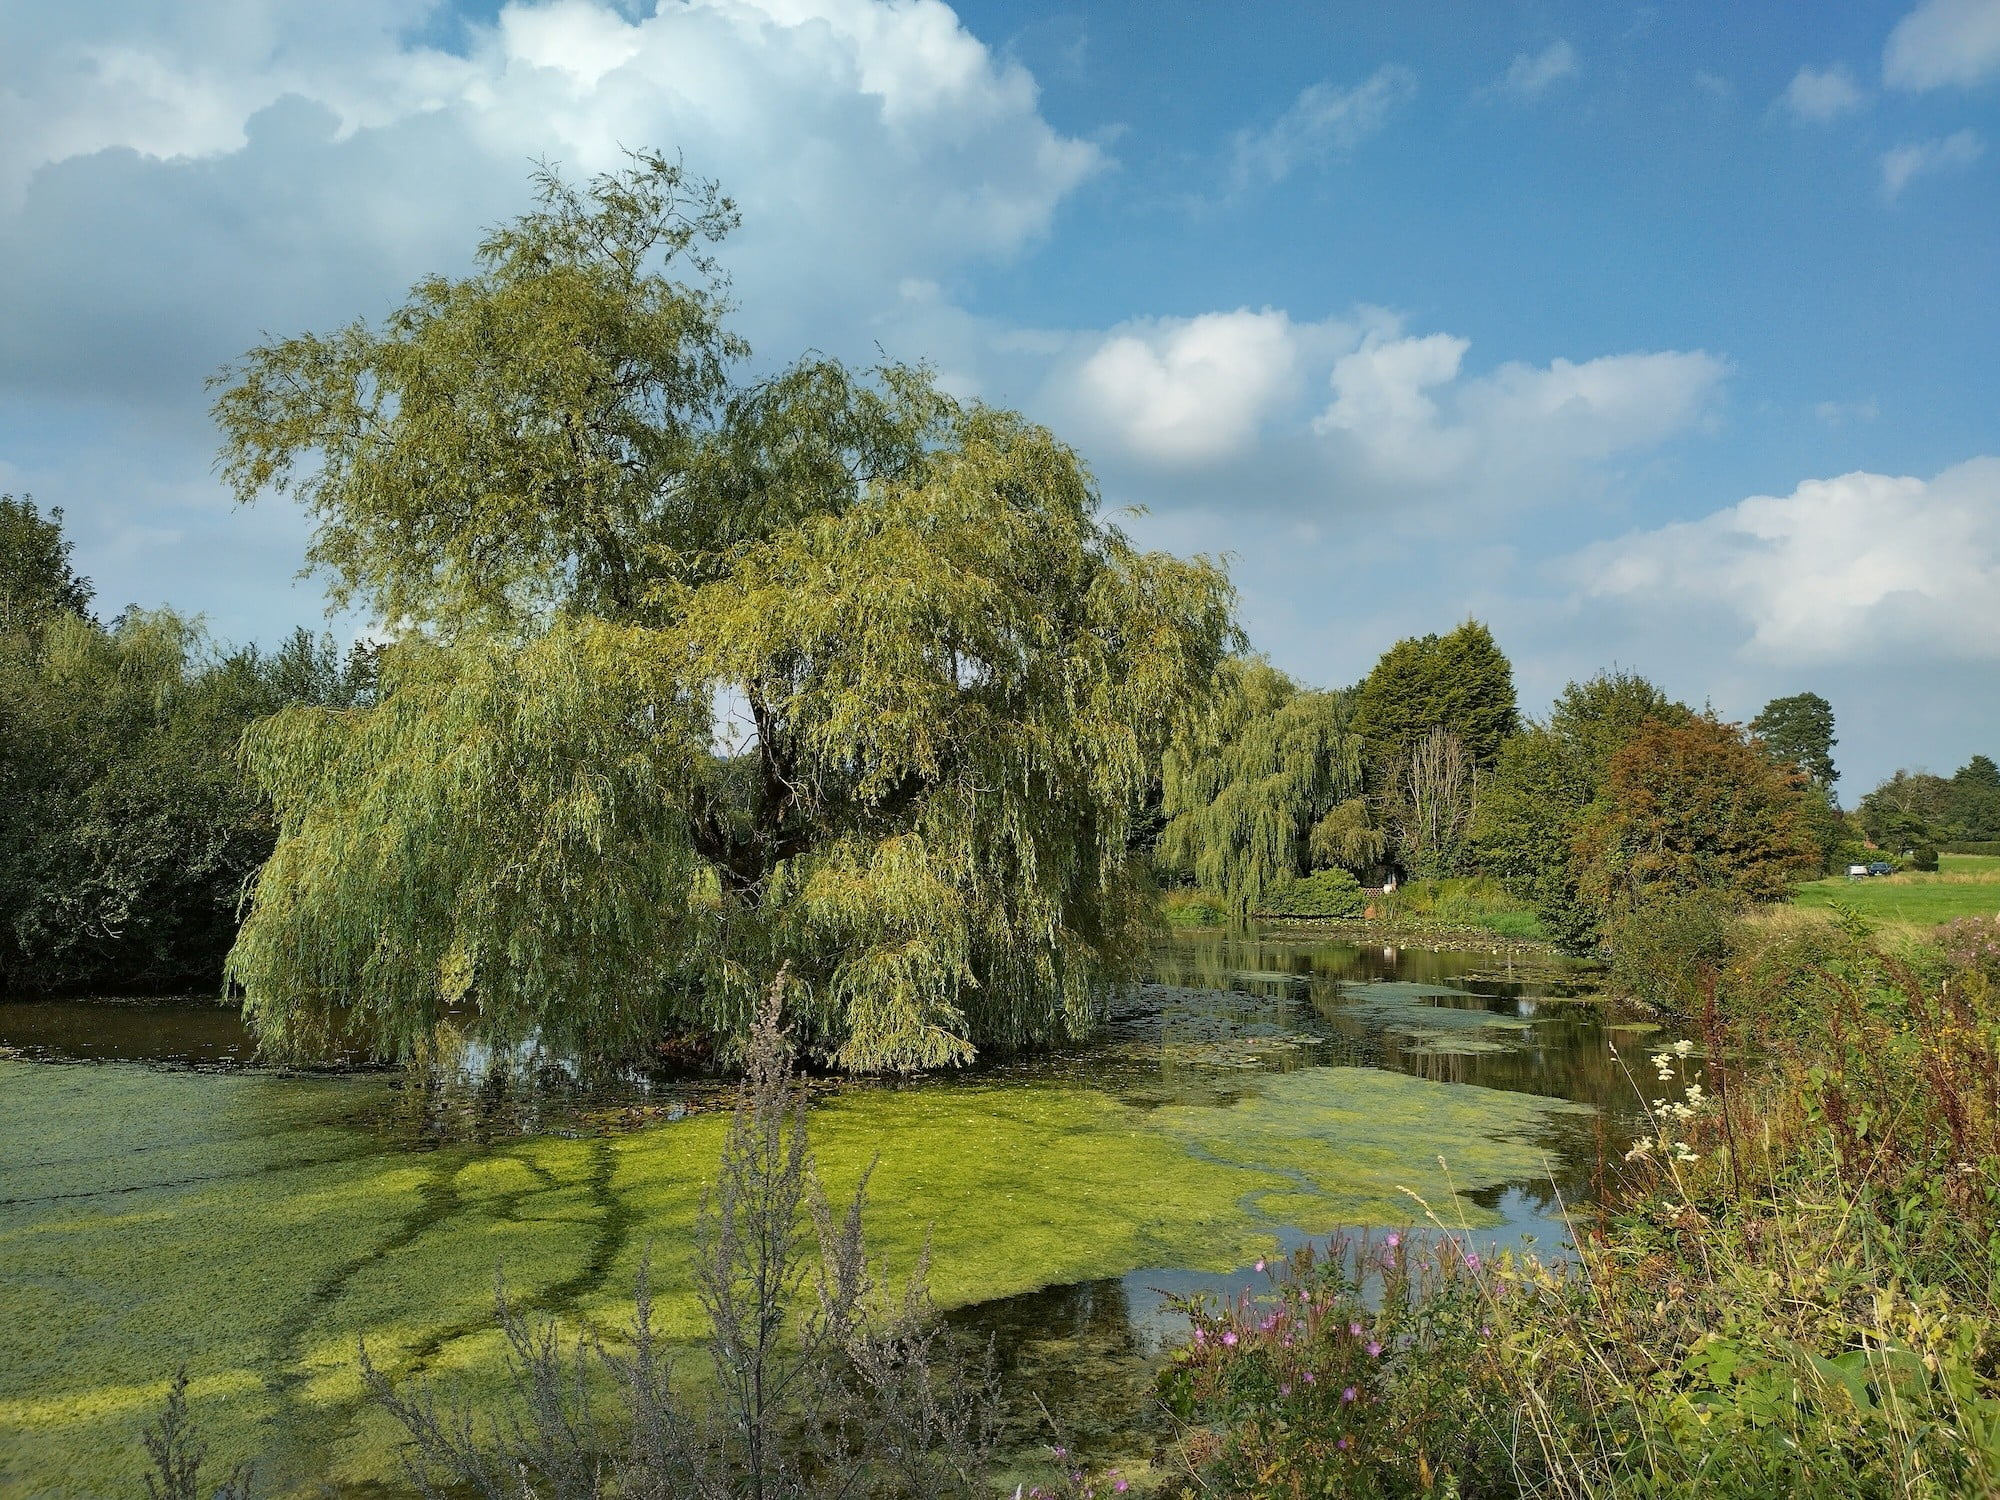 Photo of a pond taken with the Nokia XR20.